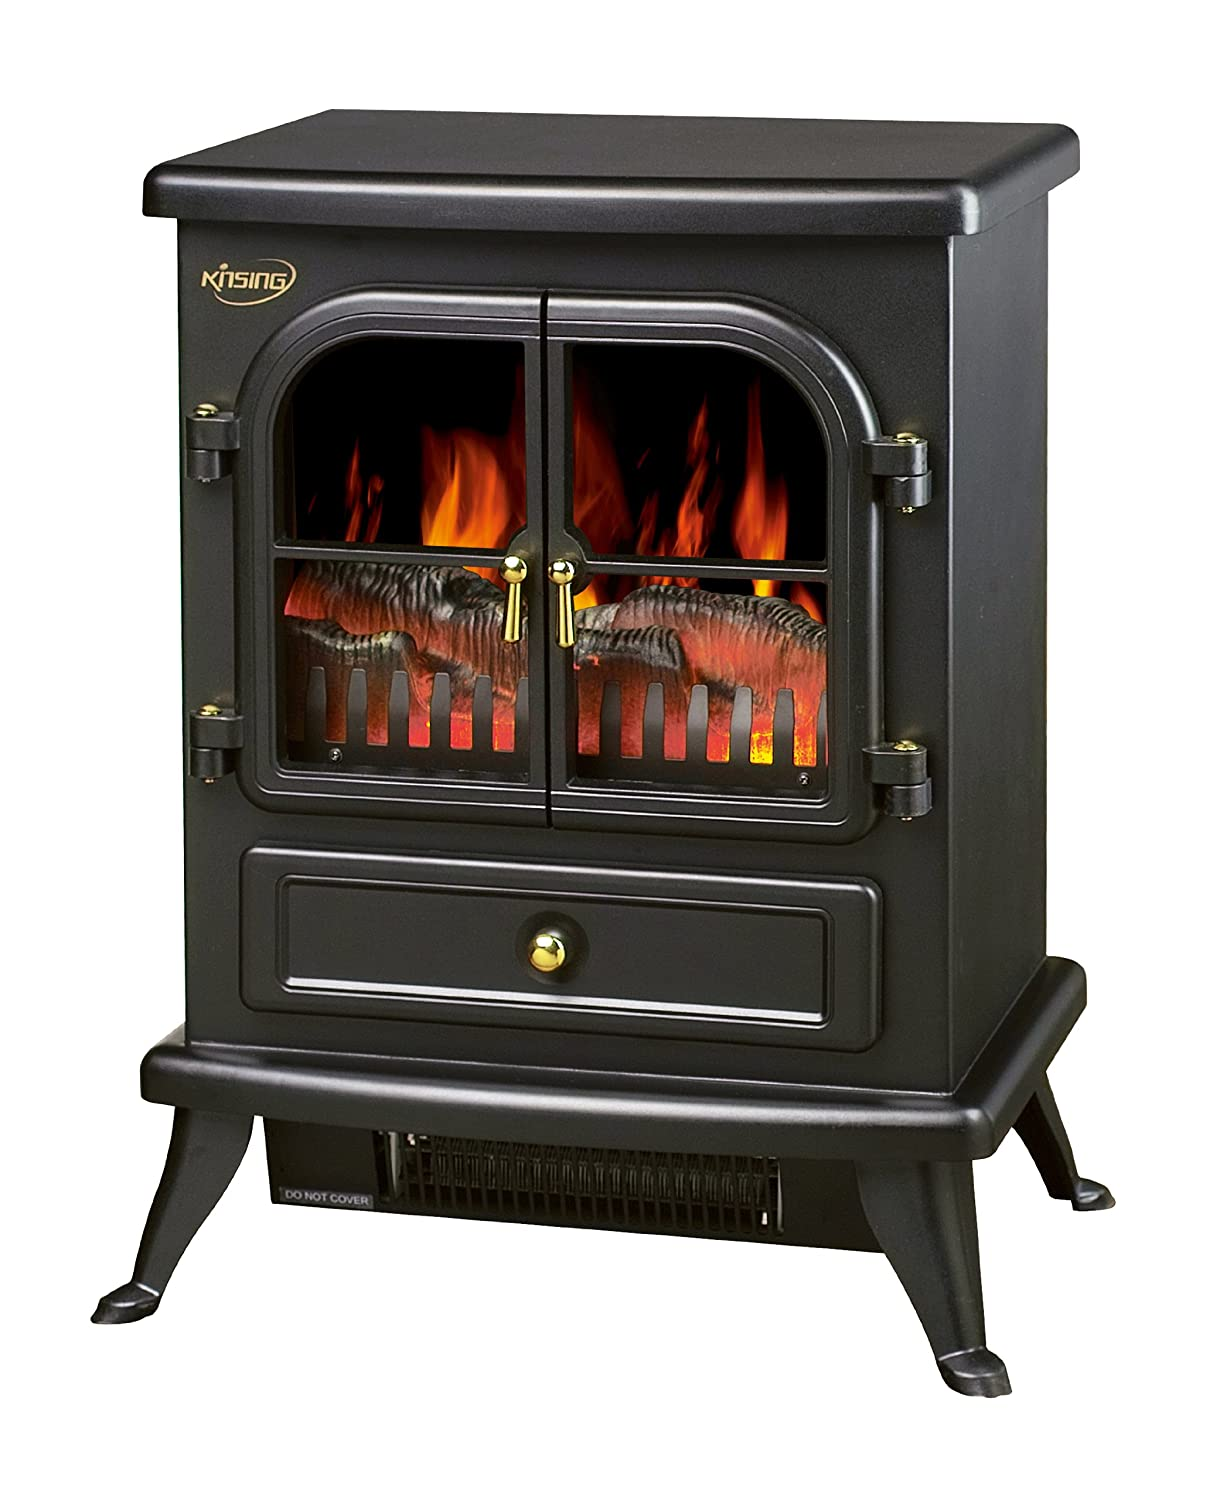 Fire Heater Fireplace Stove Cast Iron Log Burning Flame Effect 1850w Electric Ebay